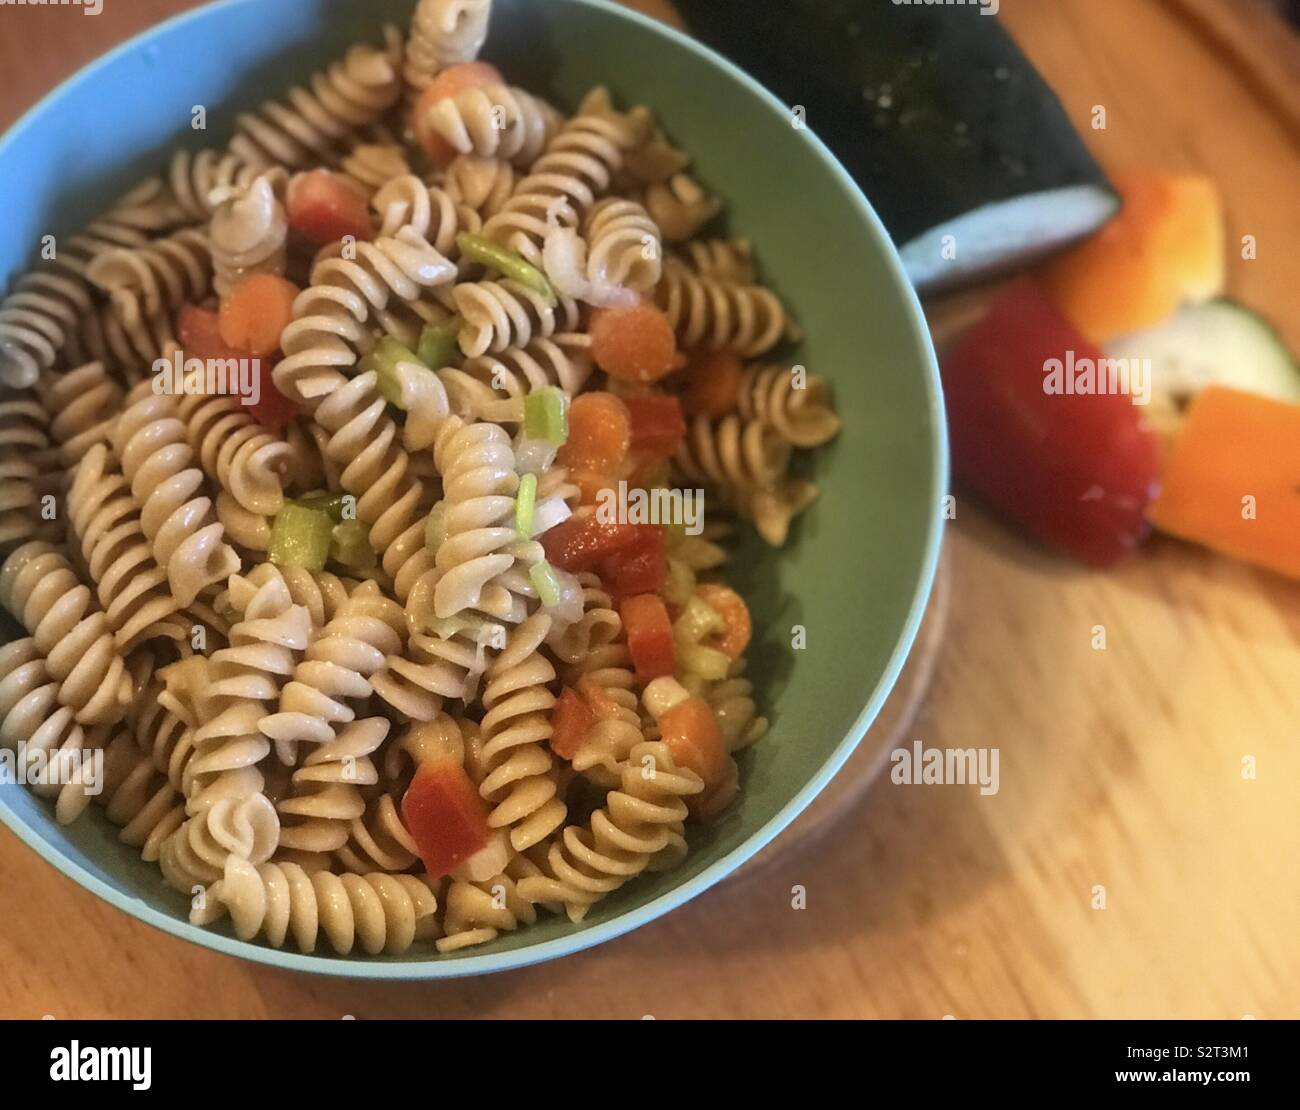 A delicious bowl of pasta salad with bell peppers, cucumbers, garlic seasoning and carrots, with chopped vegetables displayed on the side. - Stock Image